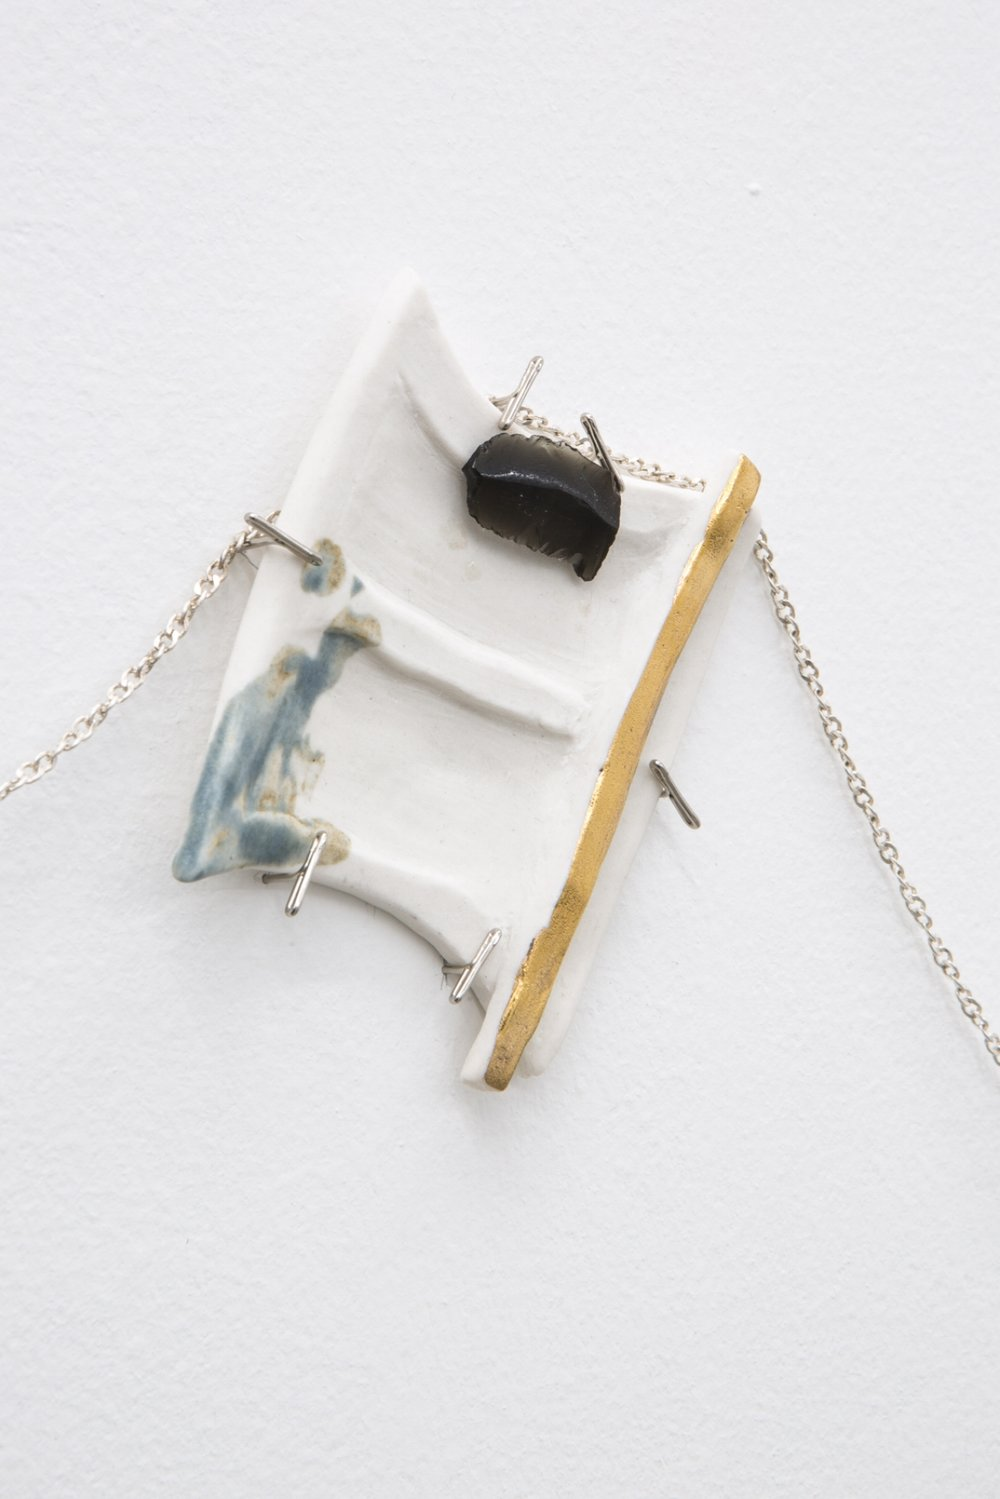 Detail view,  La Arquitectura del Mar 1 , 2018, porcelain, enamel, gold, obsidian, snake skin, goat leather, and silver chain, 80 x 90 cm